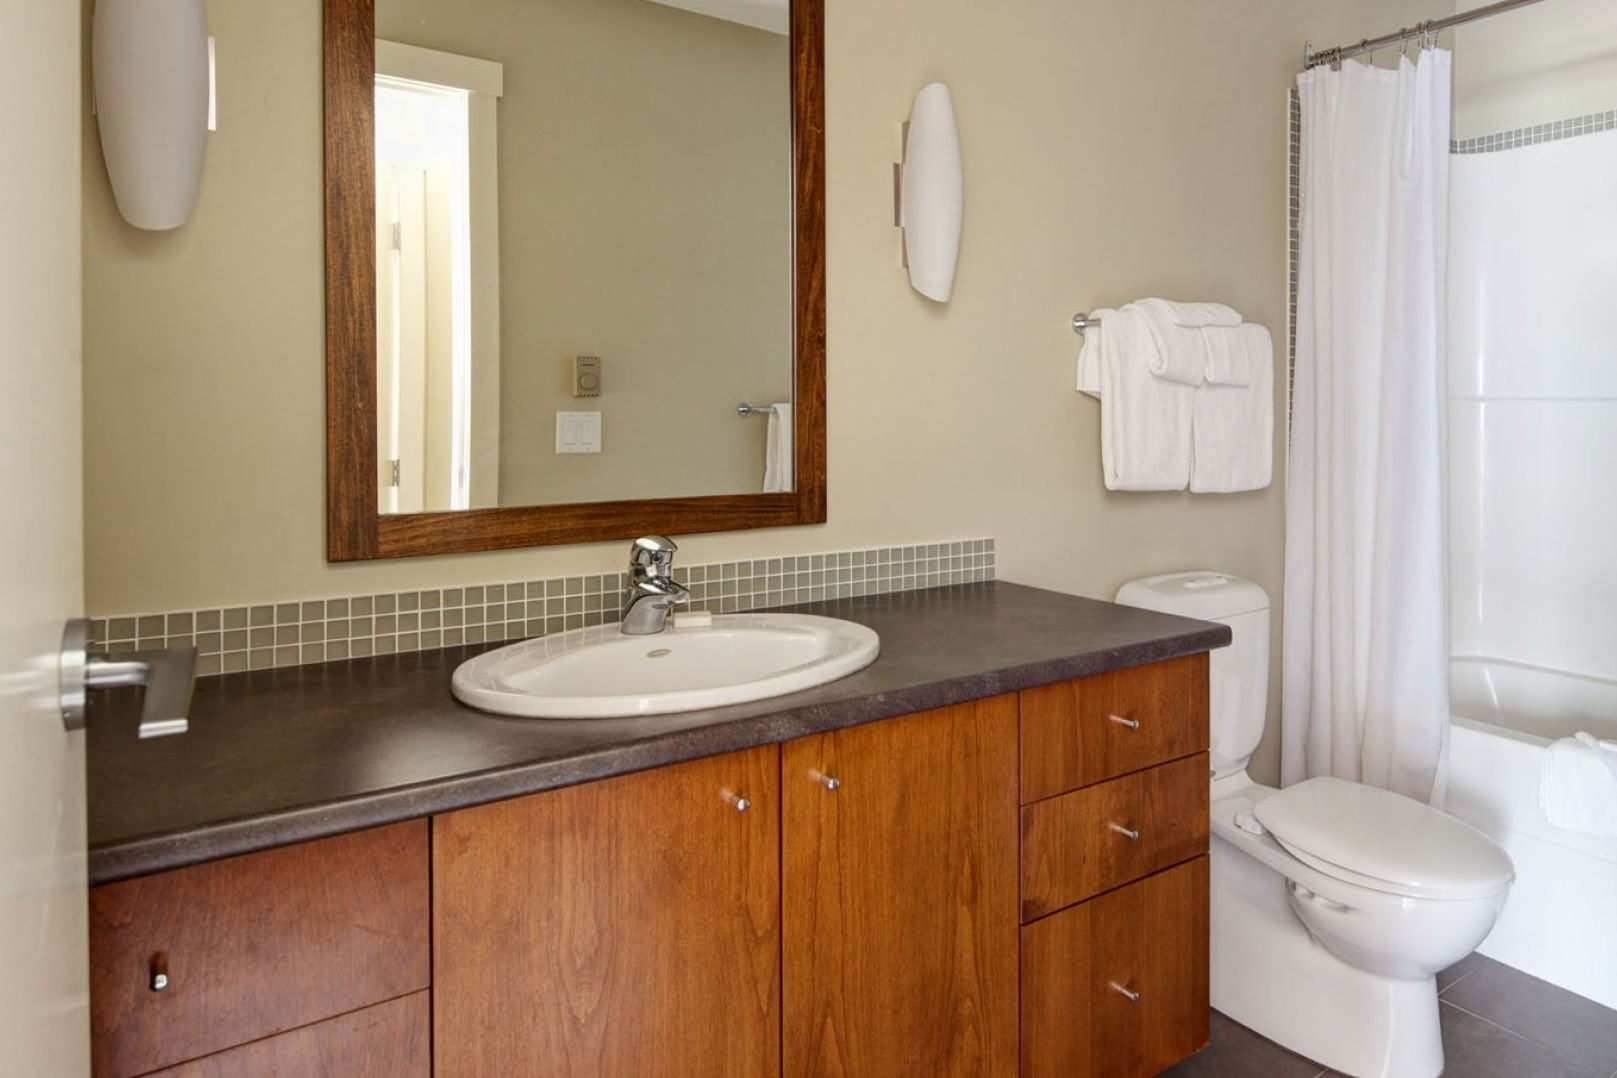 Panorama Mountain Village - lookout townhomes bathroom.jpg